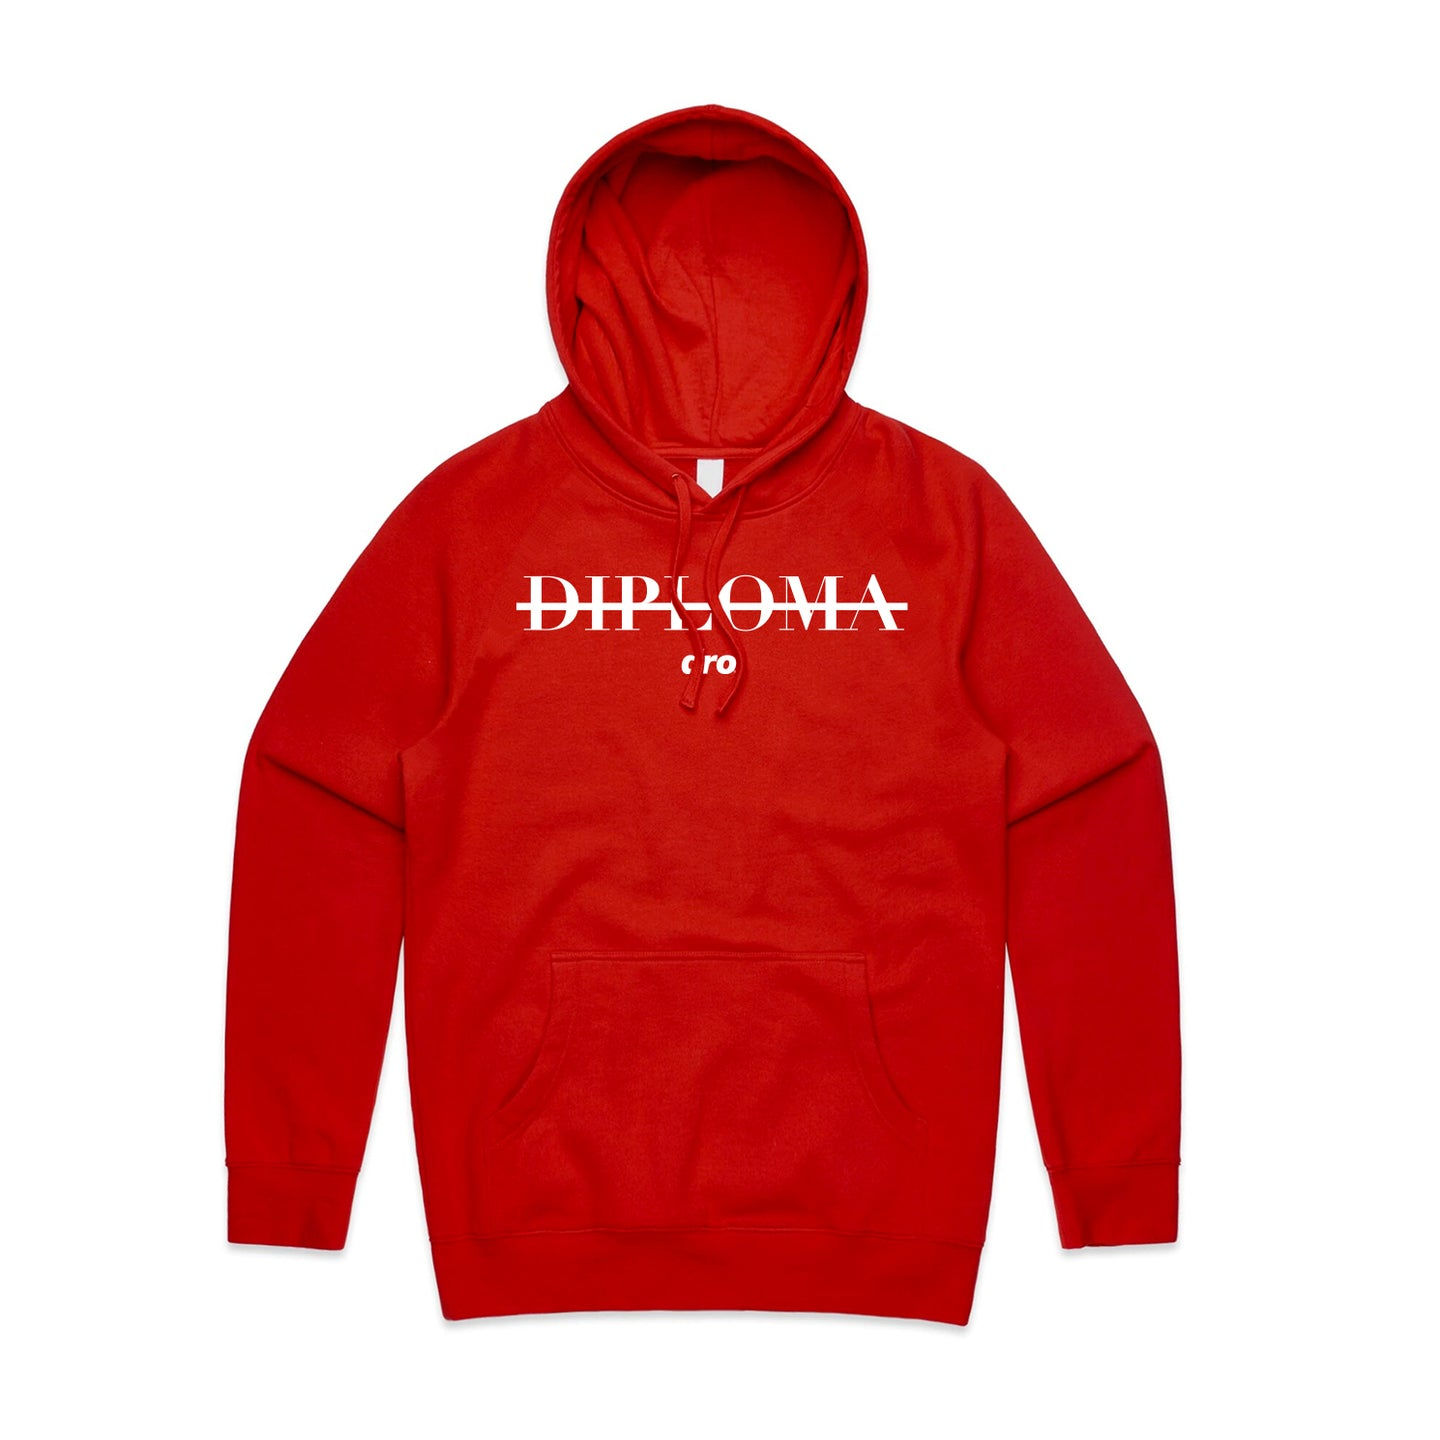 DRO Diploma Red Pullover